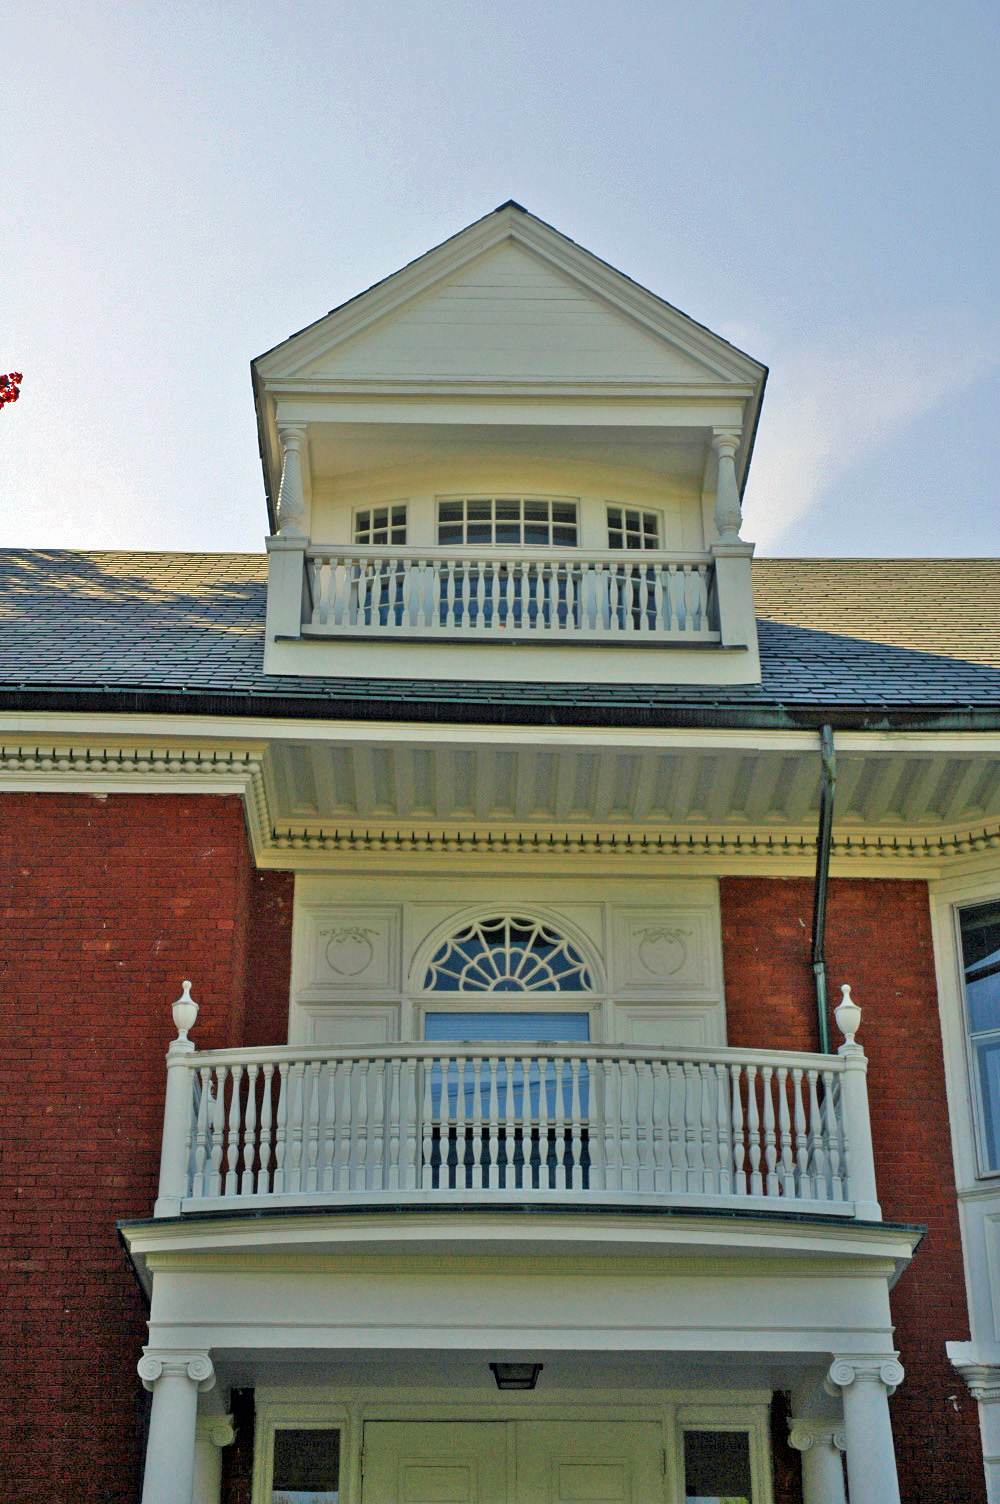 An historic house in Portland, completely restored and rehabilitated. Photo: N. Barba